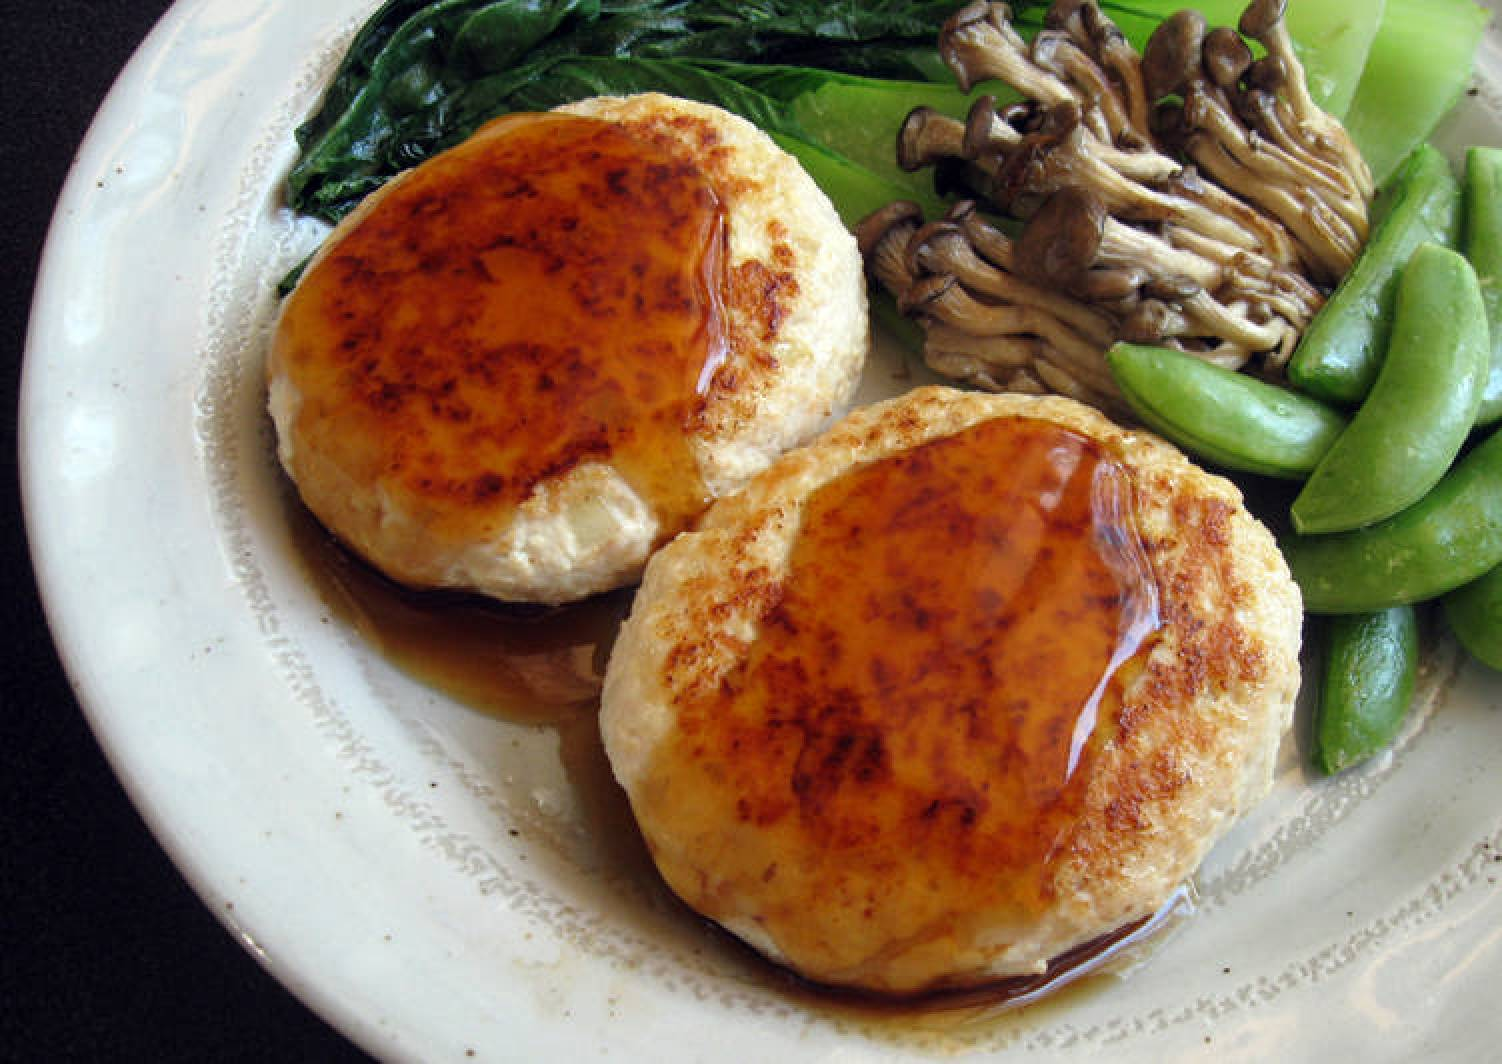 Recipe Of Perfect Healthy Chicken Amp Amp Tofu Burgers Reheating Cooking Food In The Microwave Oven Delicious Microwave Recipe Ideas Canned Tuna 25 Best Quick And Easy Recipes With Canned Tuna